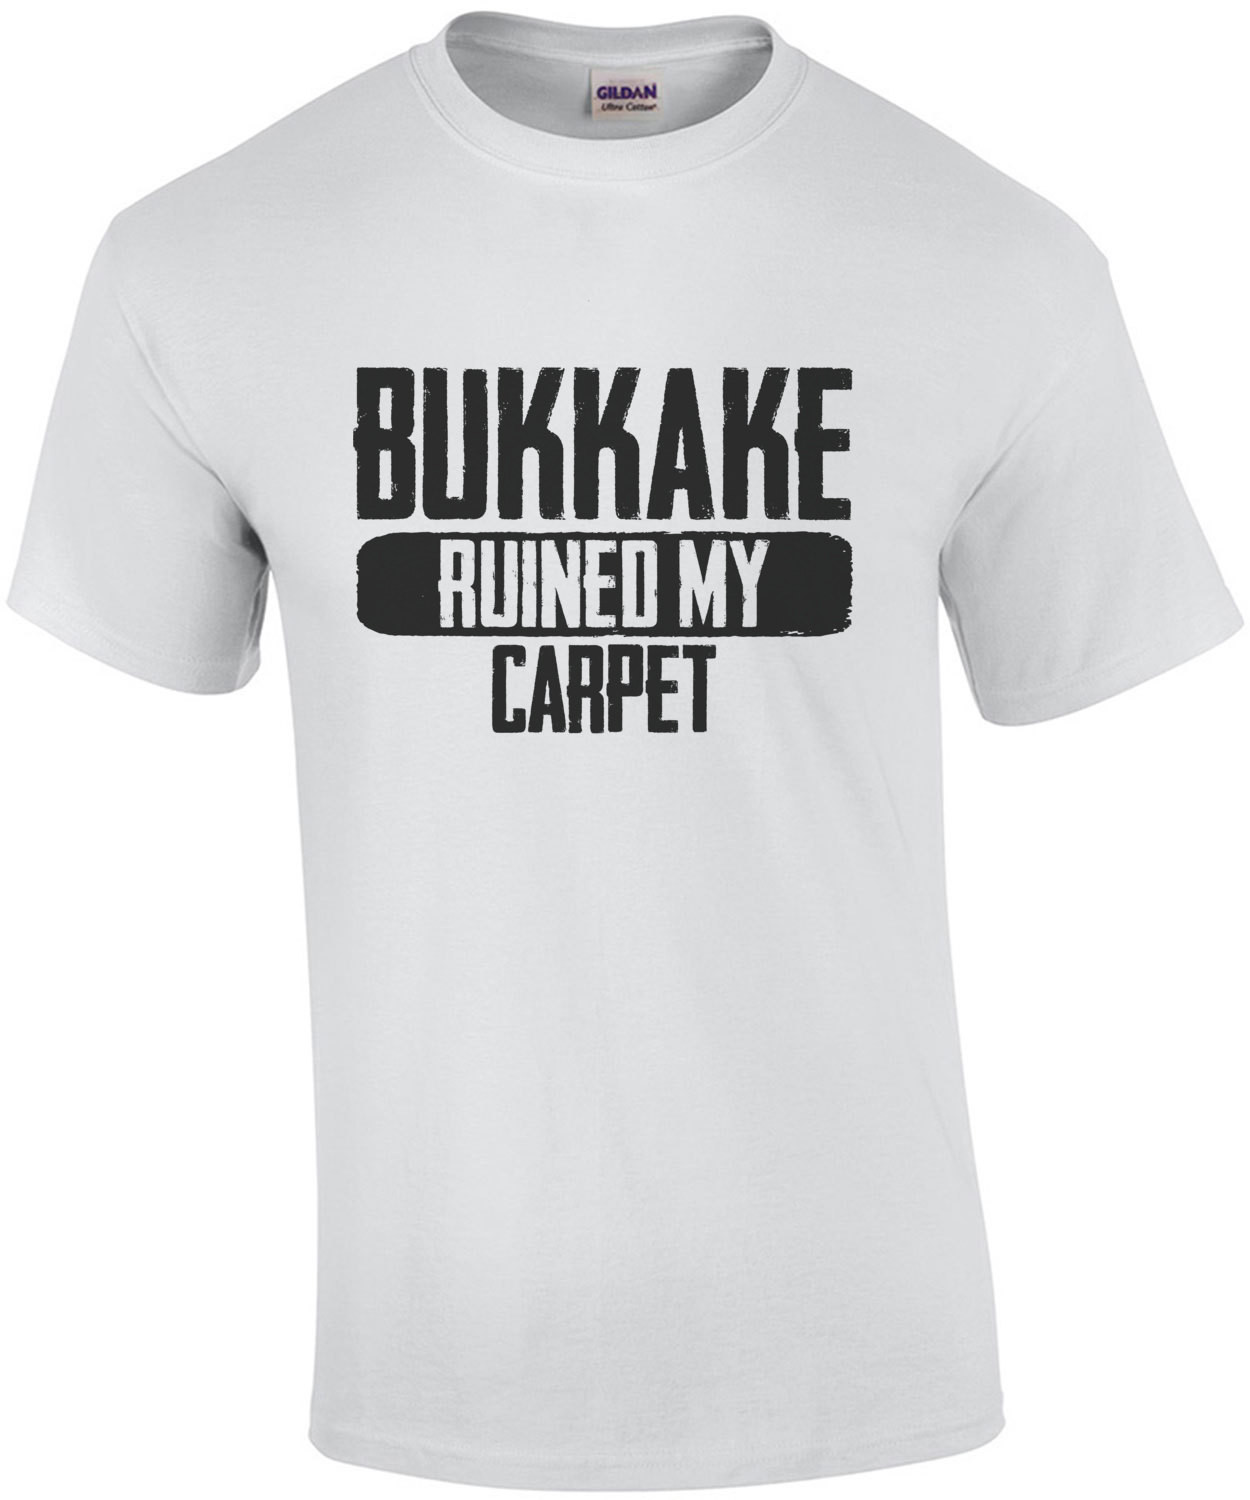 bukkake ruined my carpet T-Shirt